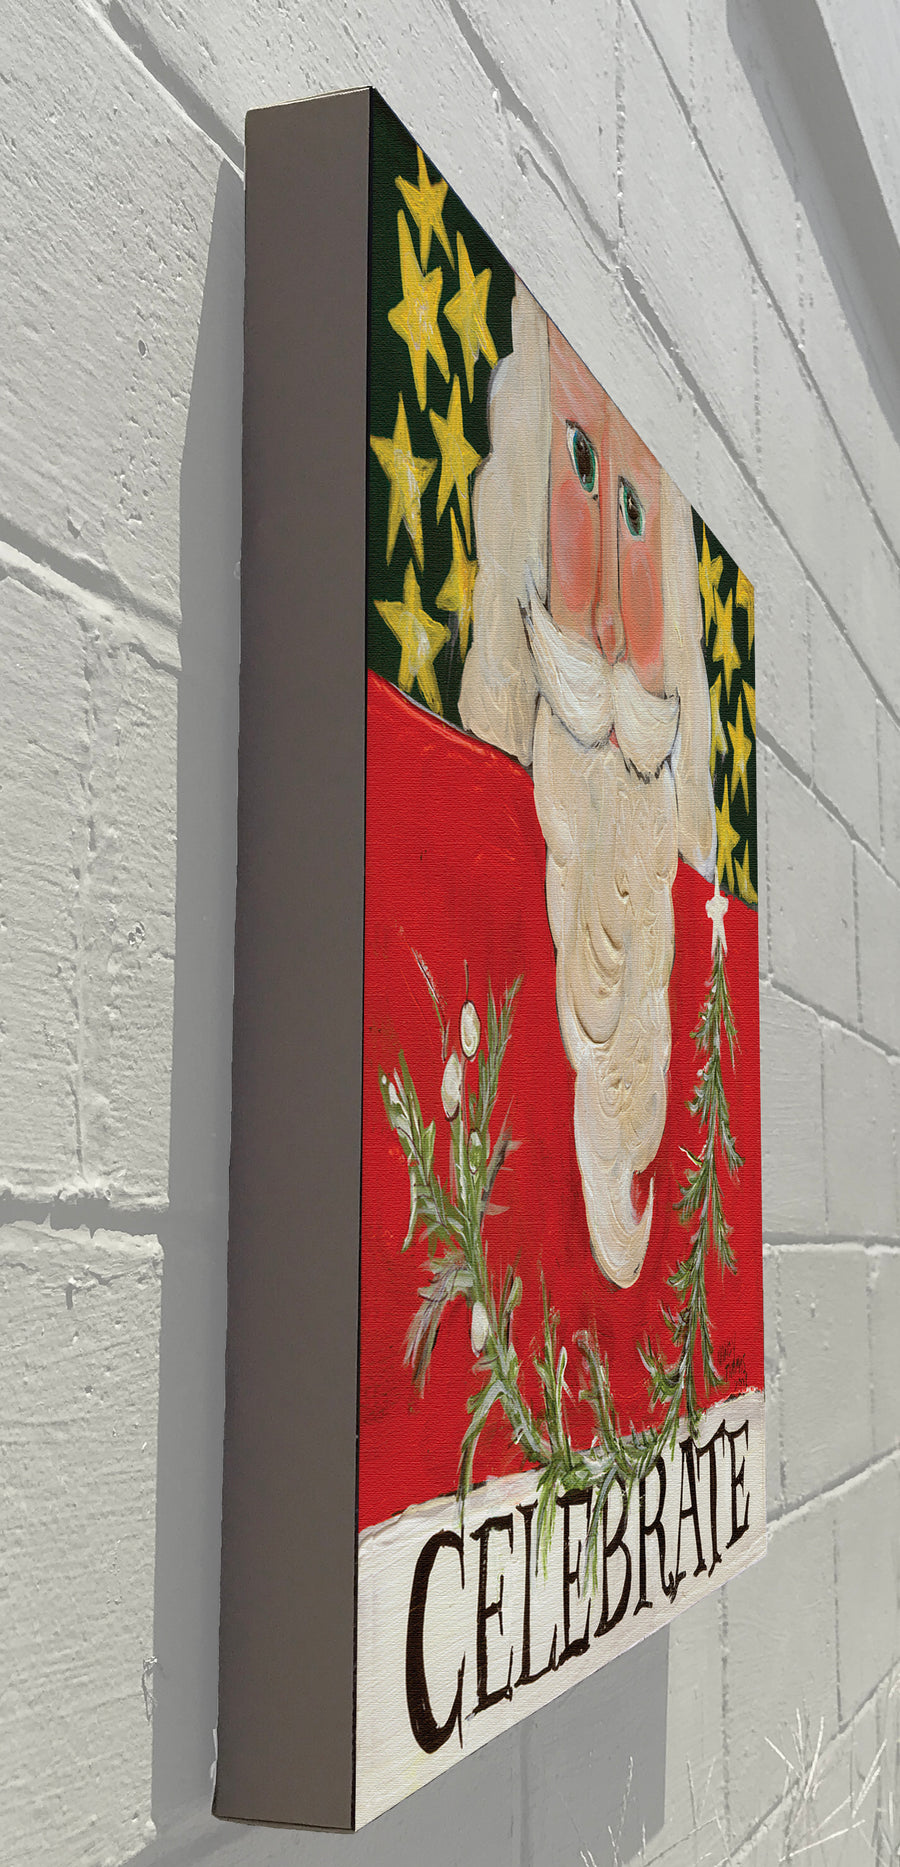 Gallery Canvas - Celebrate Santa - Red